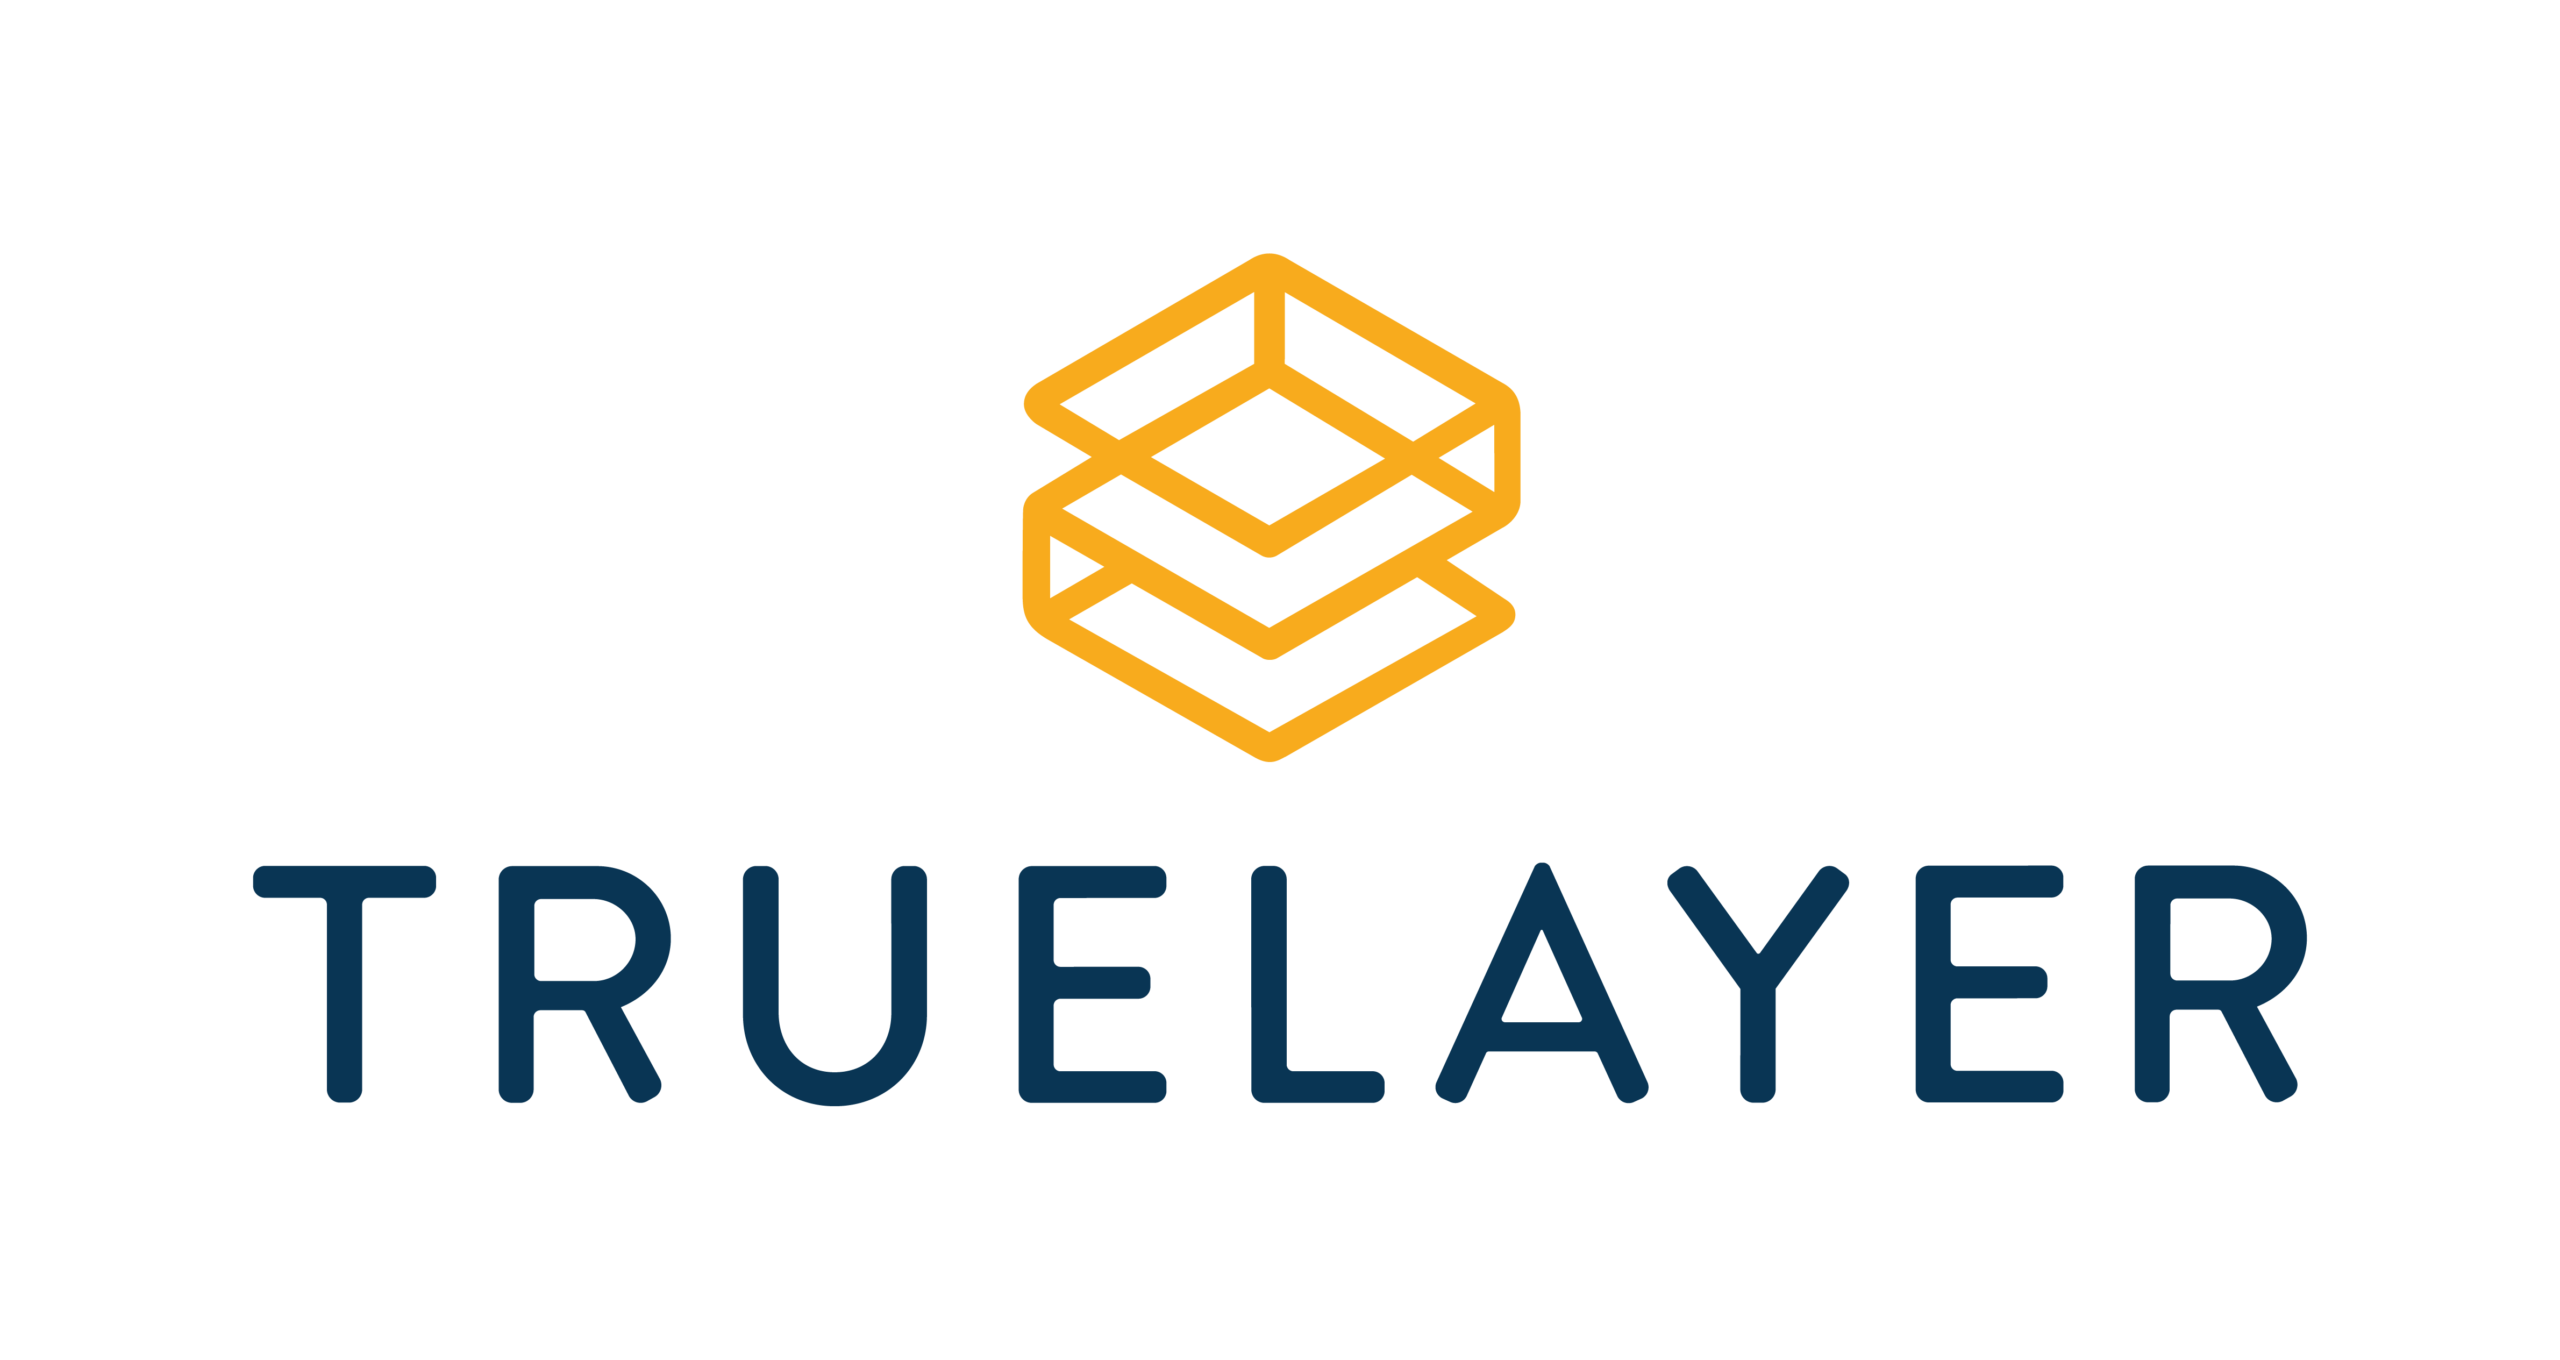 TrueLayer and Freetrade Collaborate to Deliver Seamless Investing Experience Using Open Banking